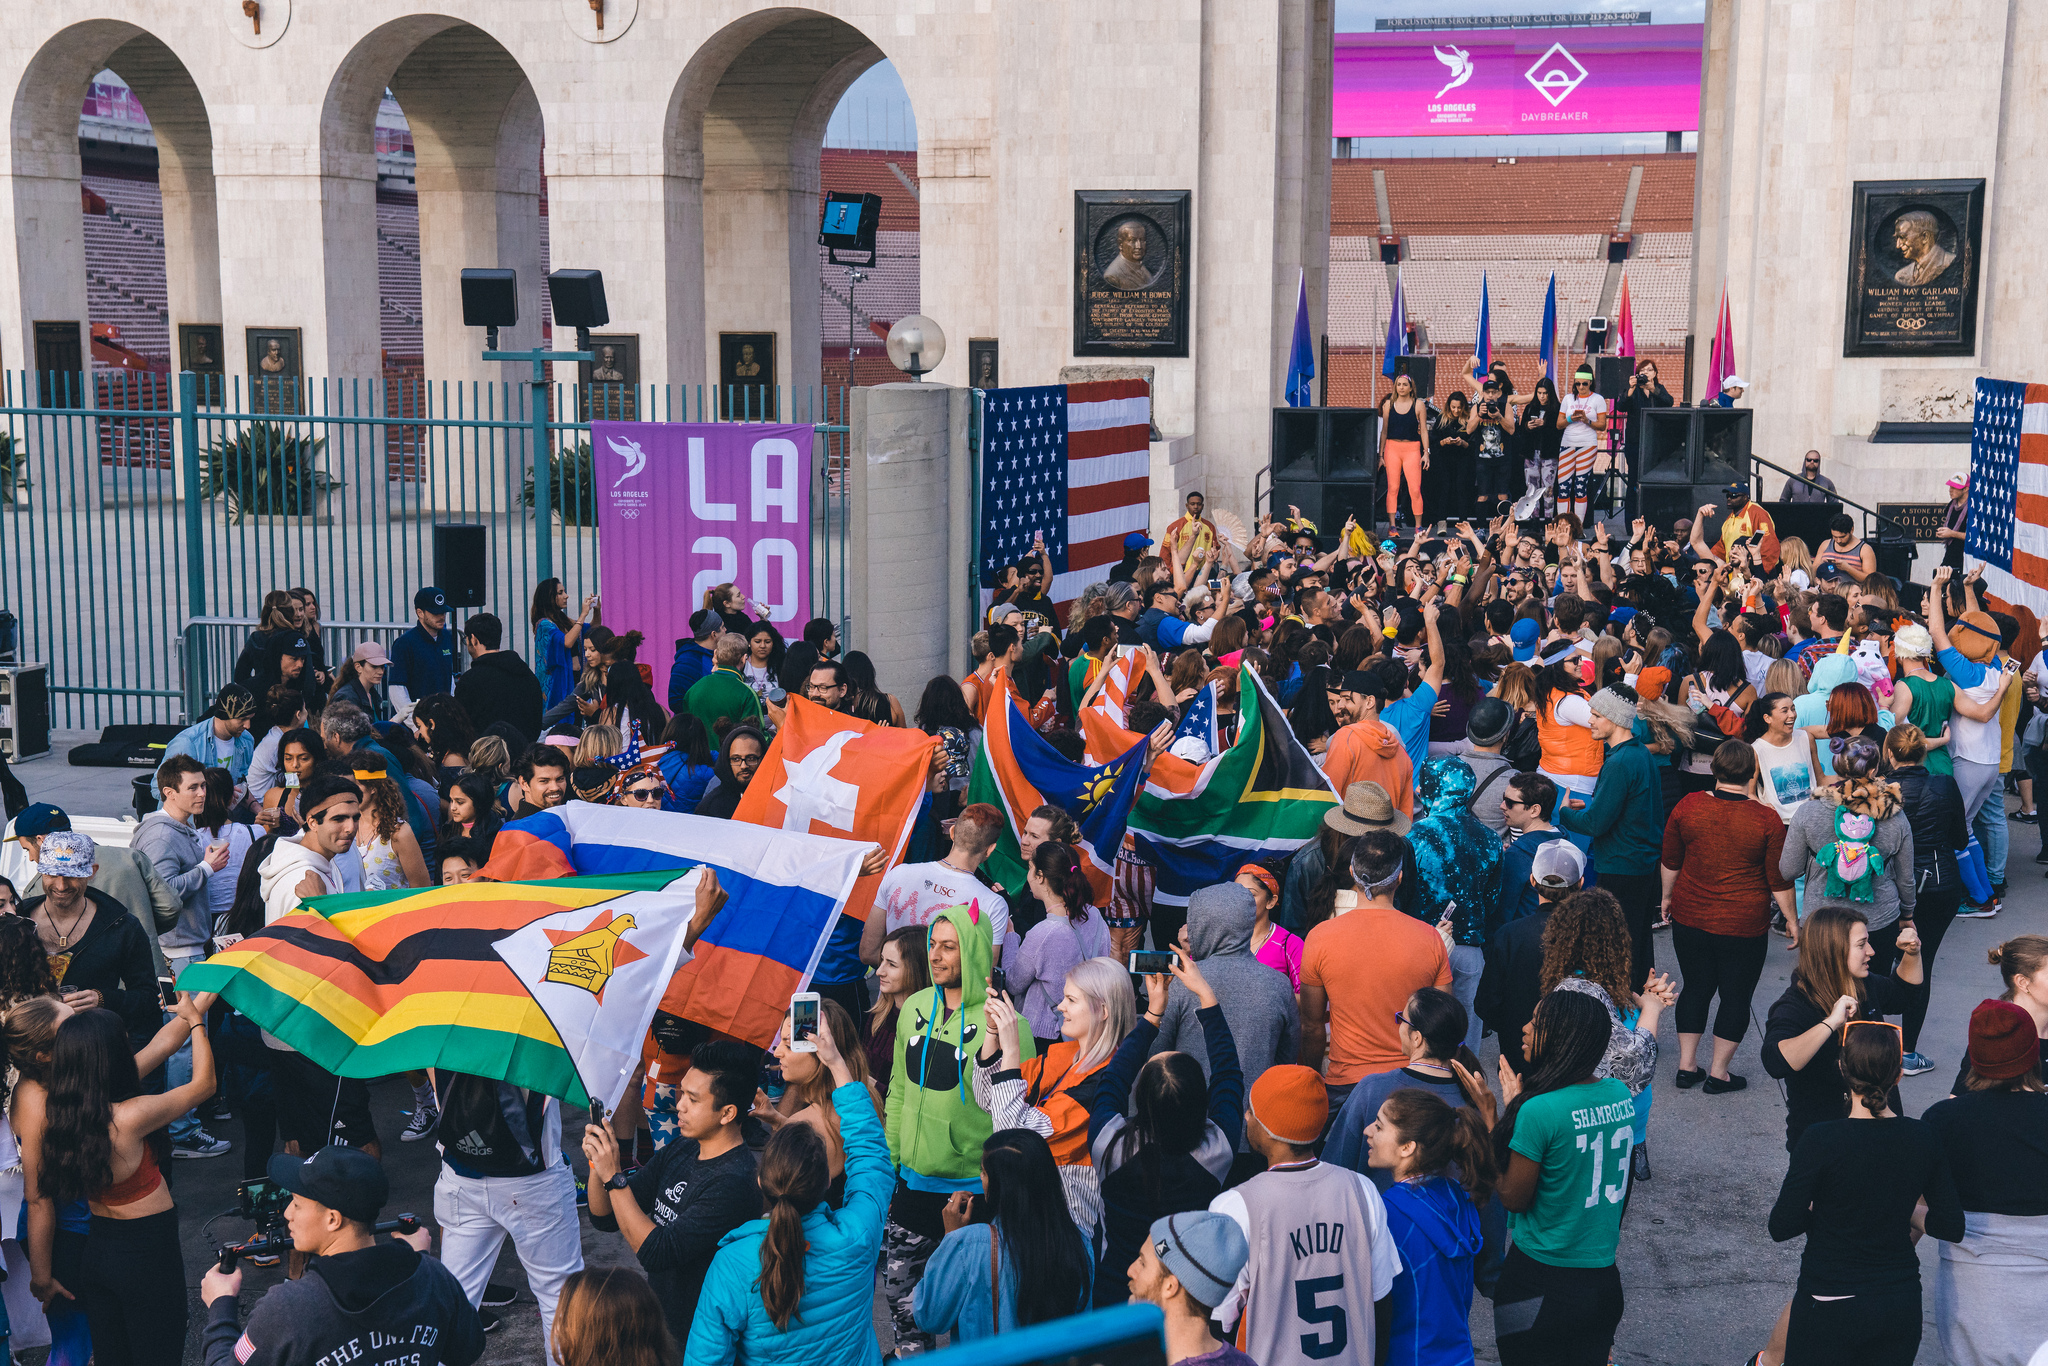 L.A. 2024 marked Thursday's delivery to the International Olympic Committee of its final Summer Games bid plans with a public celebration at the L.A,. Coliseum. Photo L.A. 2024.